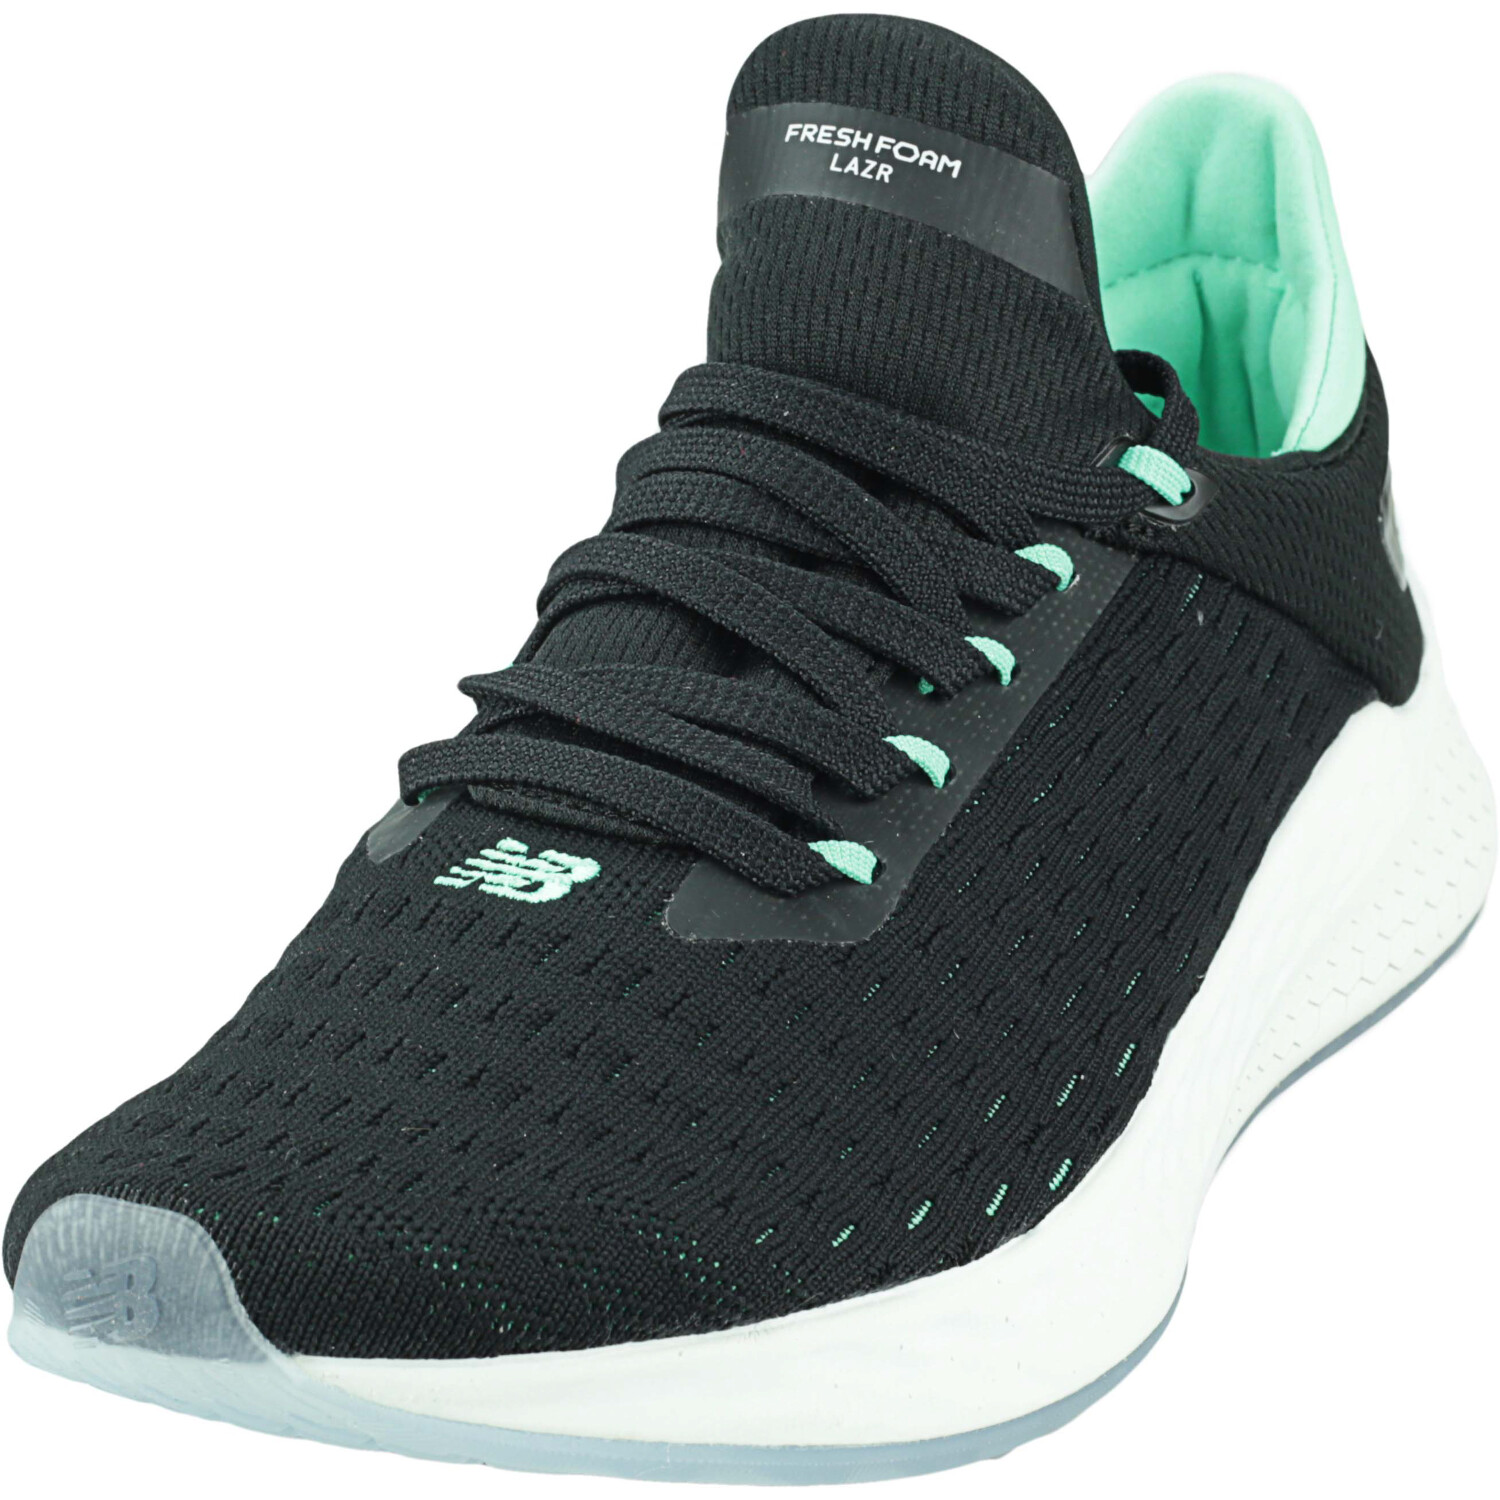 New Balance Men's Mlzhk Black / Neon Emerald Low Top Mesh Running - 8W